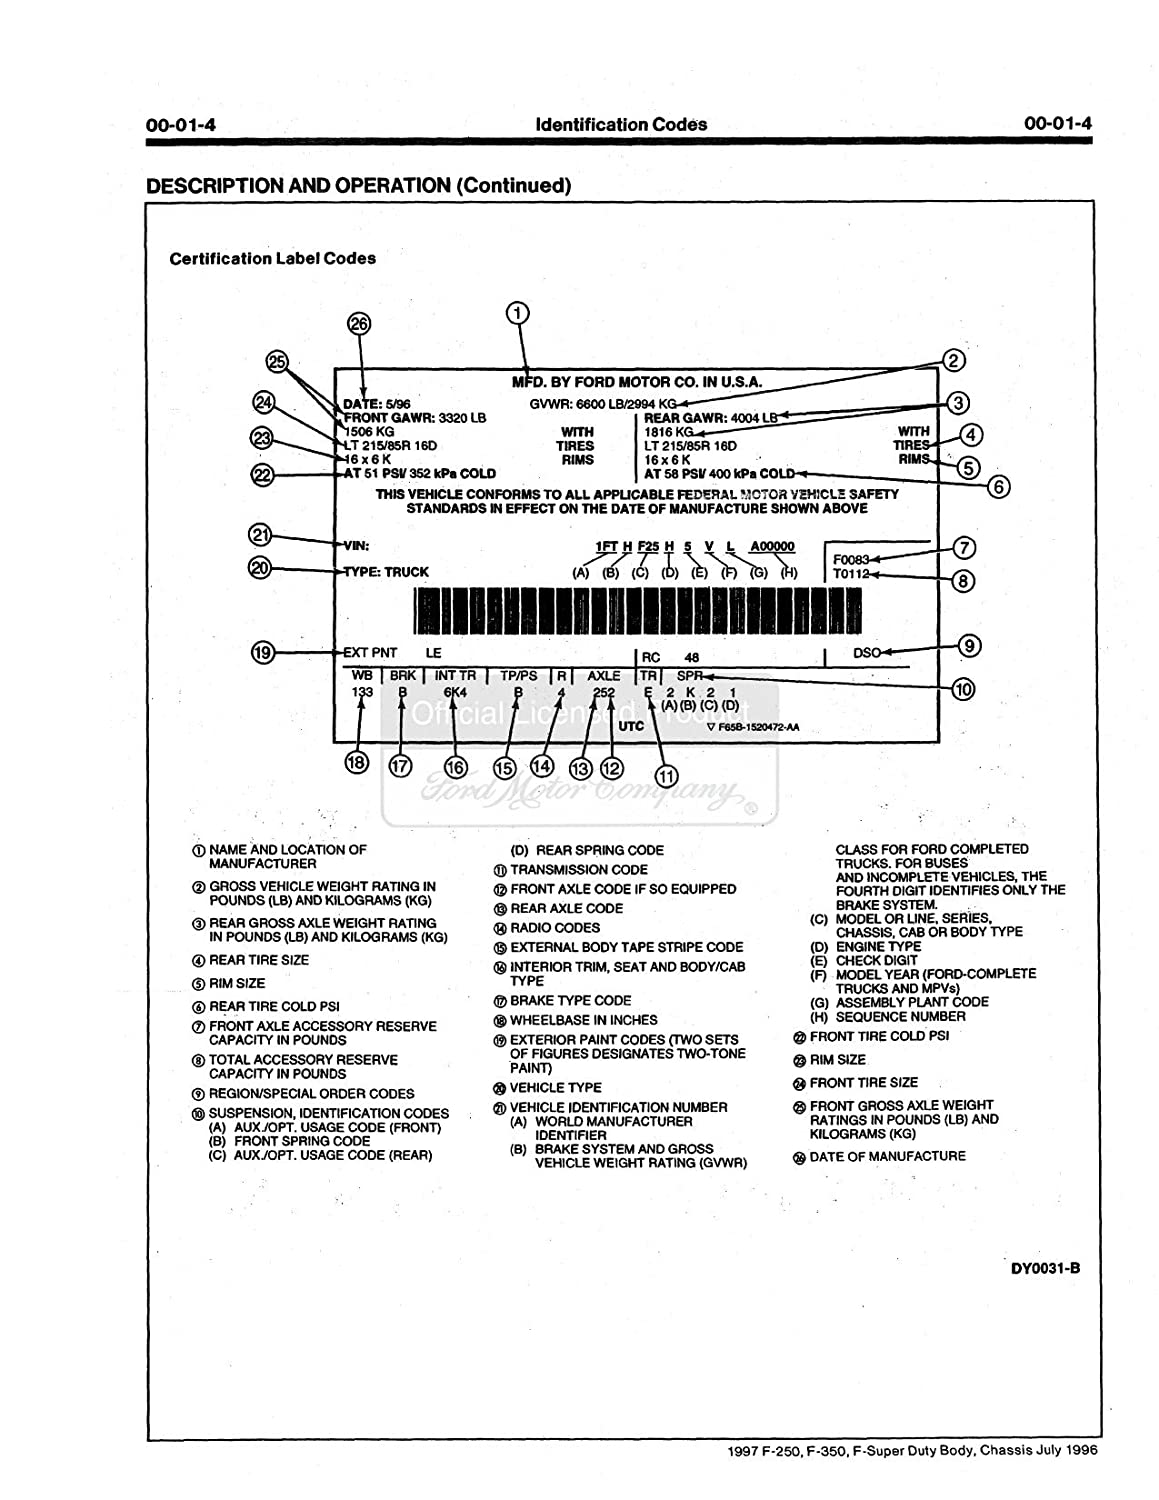 curb wiring diagram ford f250 user manuals